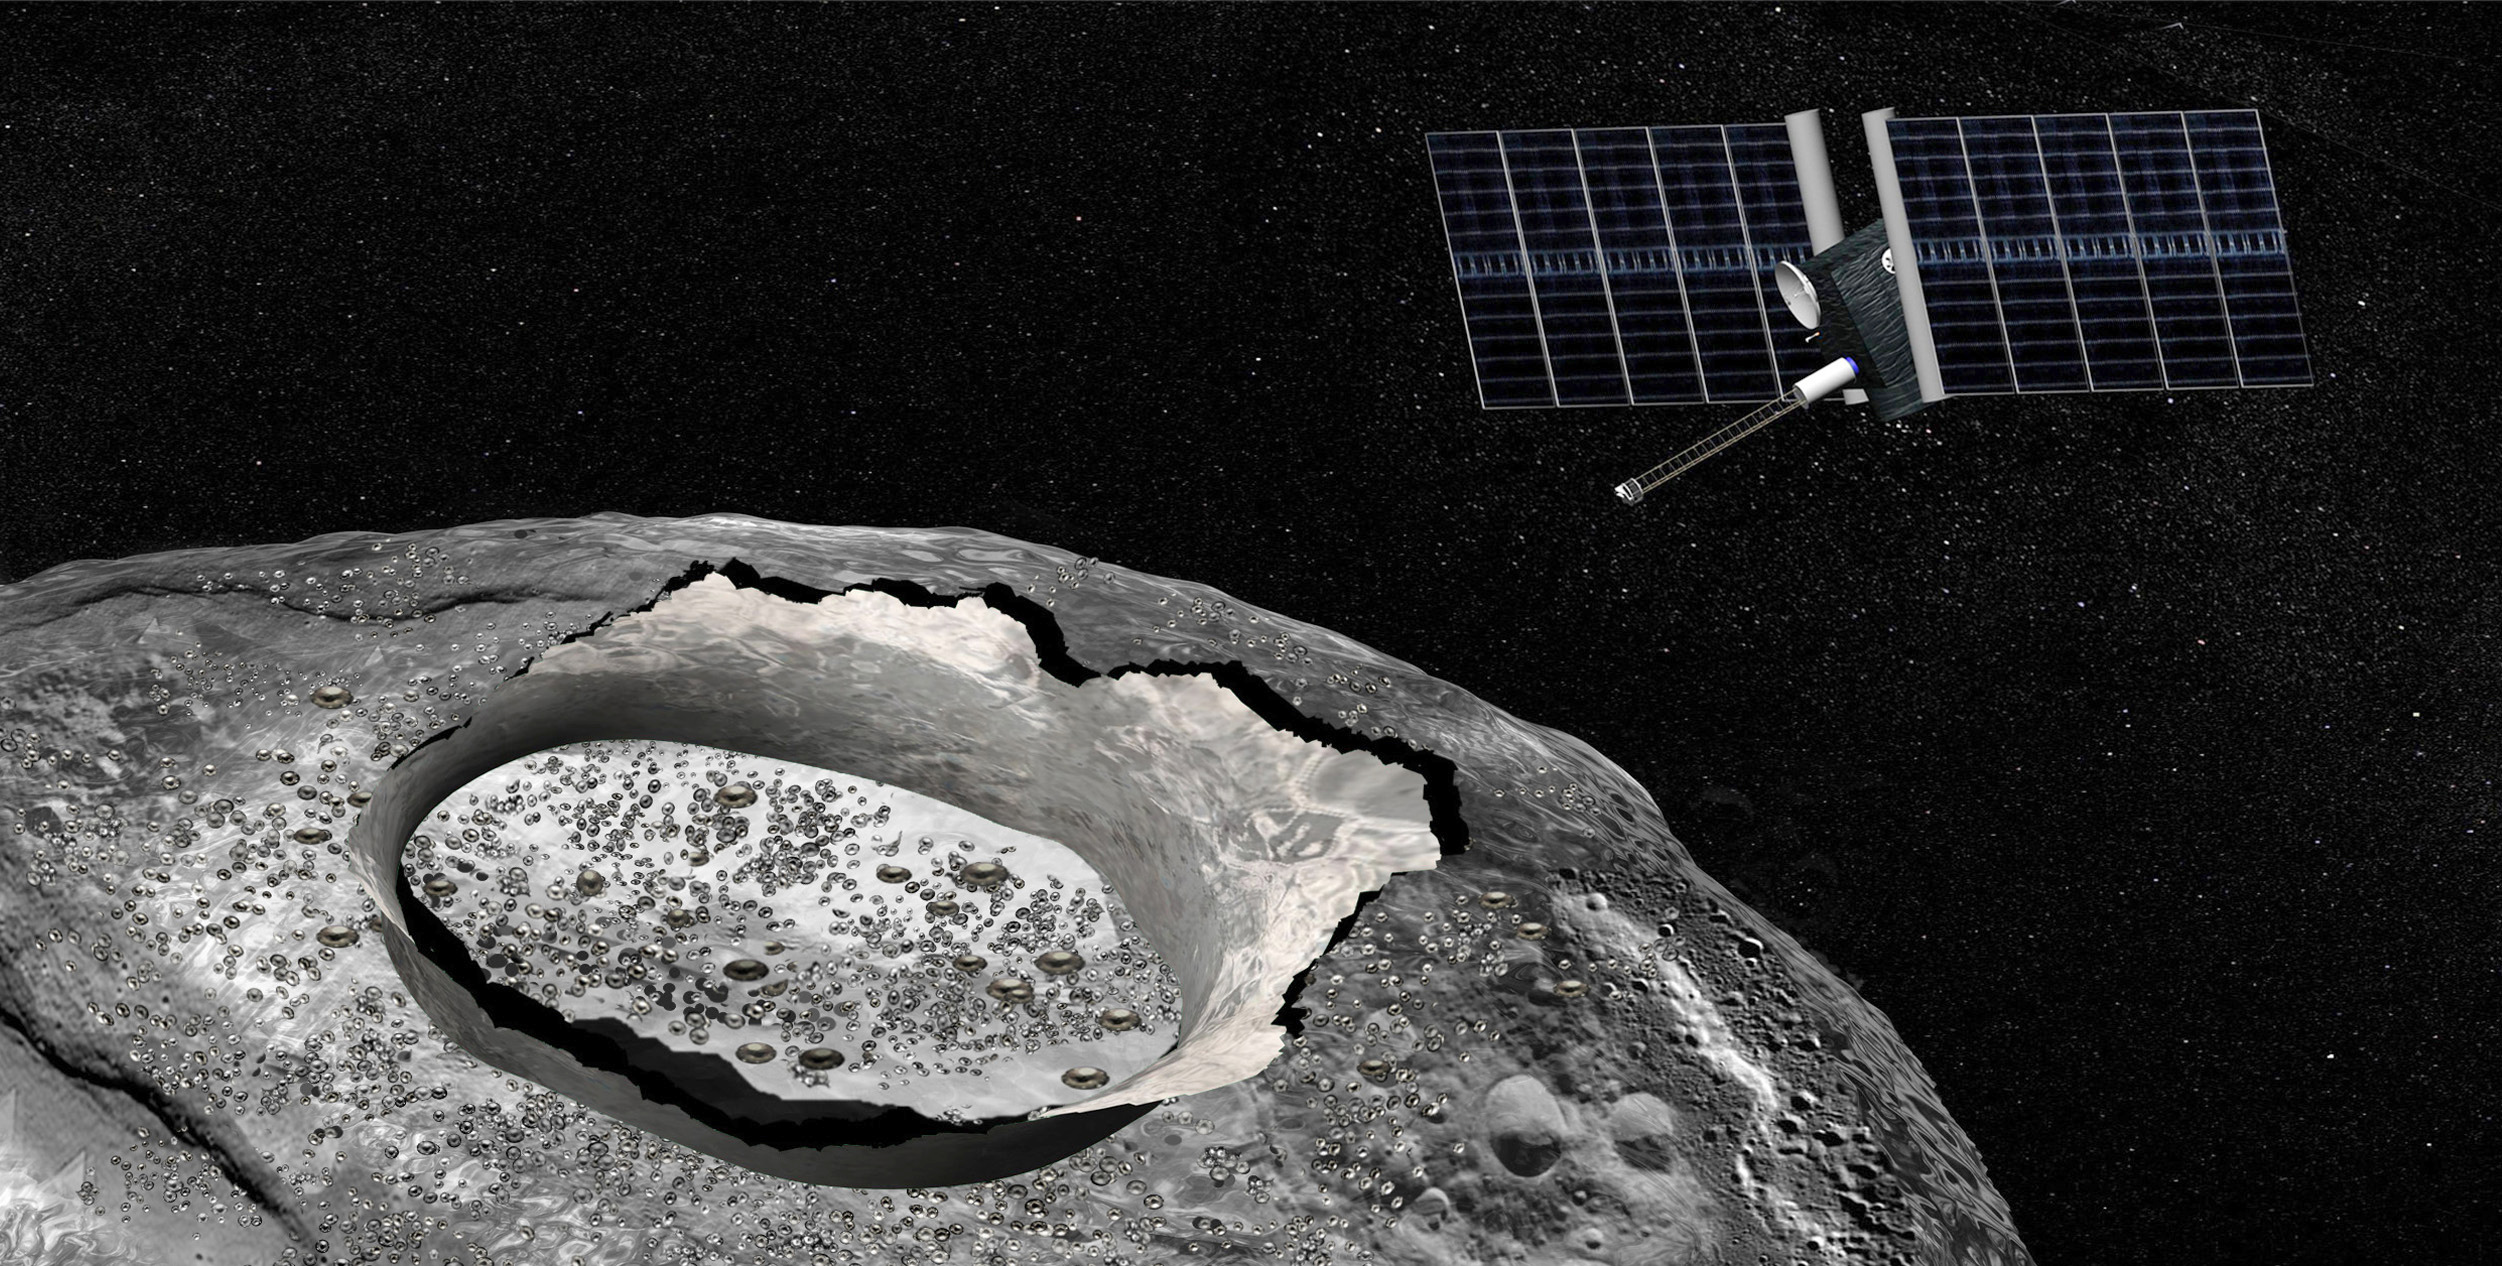 Artist's concept of the Psyche spacecraft, a proposed mission for NASA's Discovery program that would conduct a direct exploration of the 186-mile-wide nickel-iron asteroid 16Psyche thought to be a stripped planetary core. Image credit: NASA/JPL-Caltech.